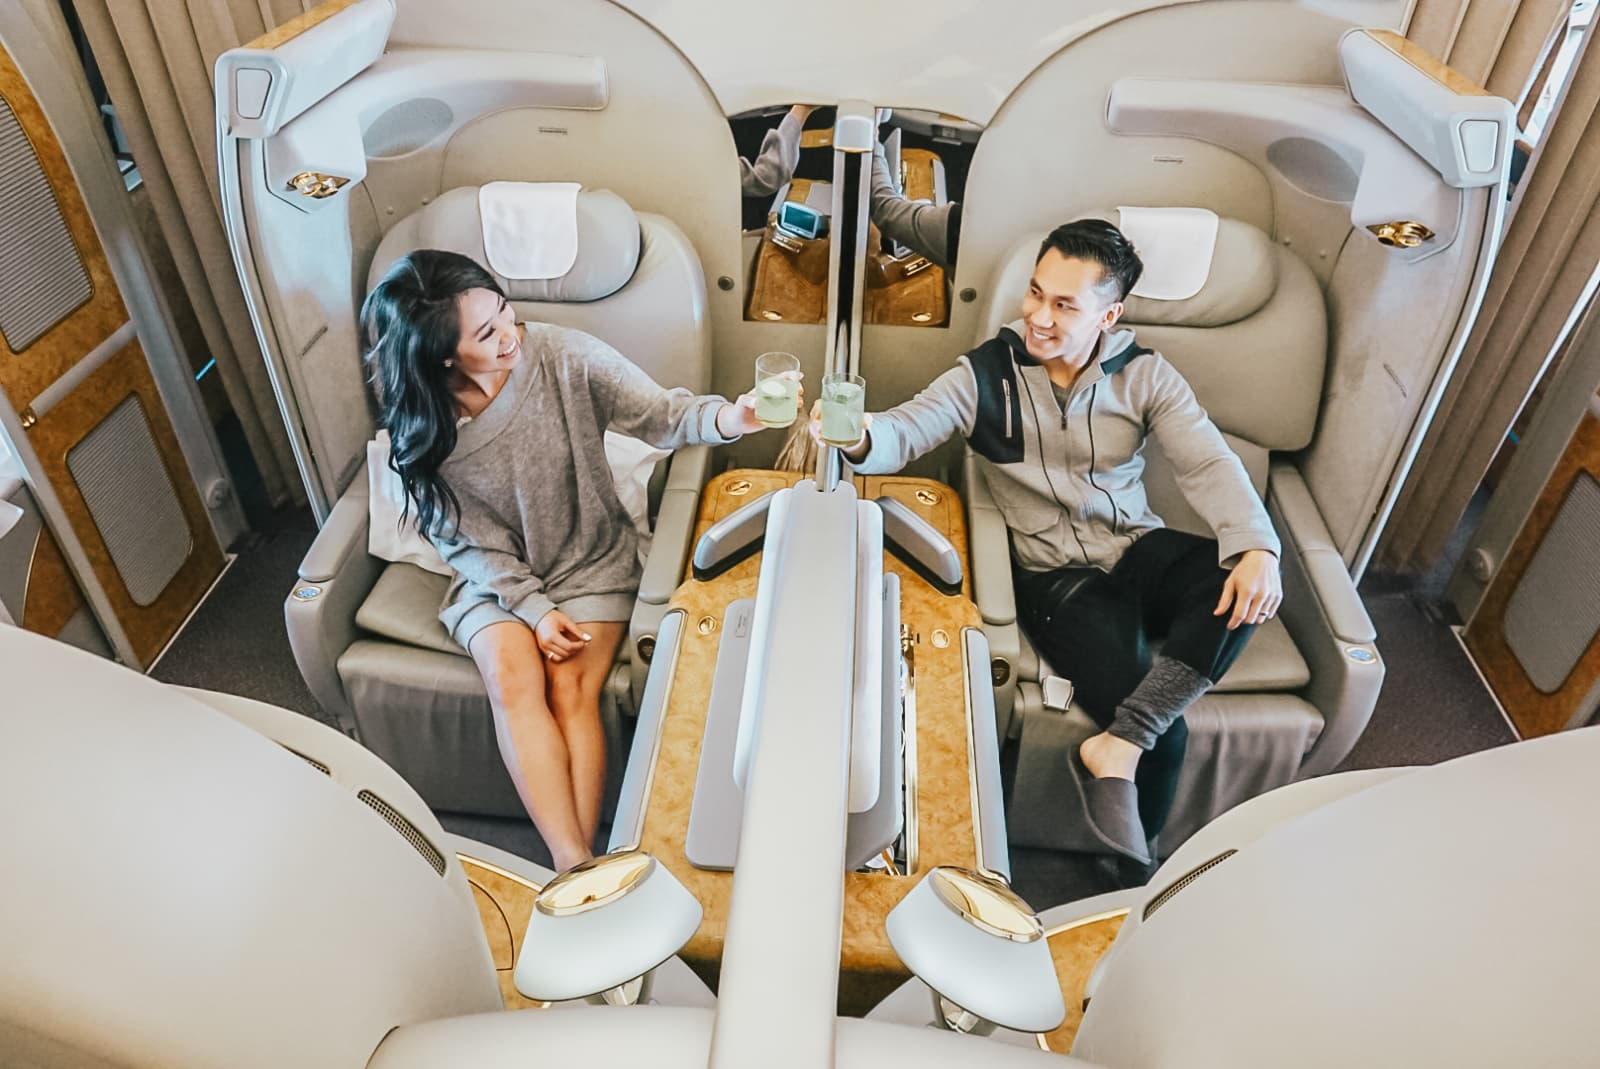 The two toast each other while sitting in first-class.